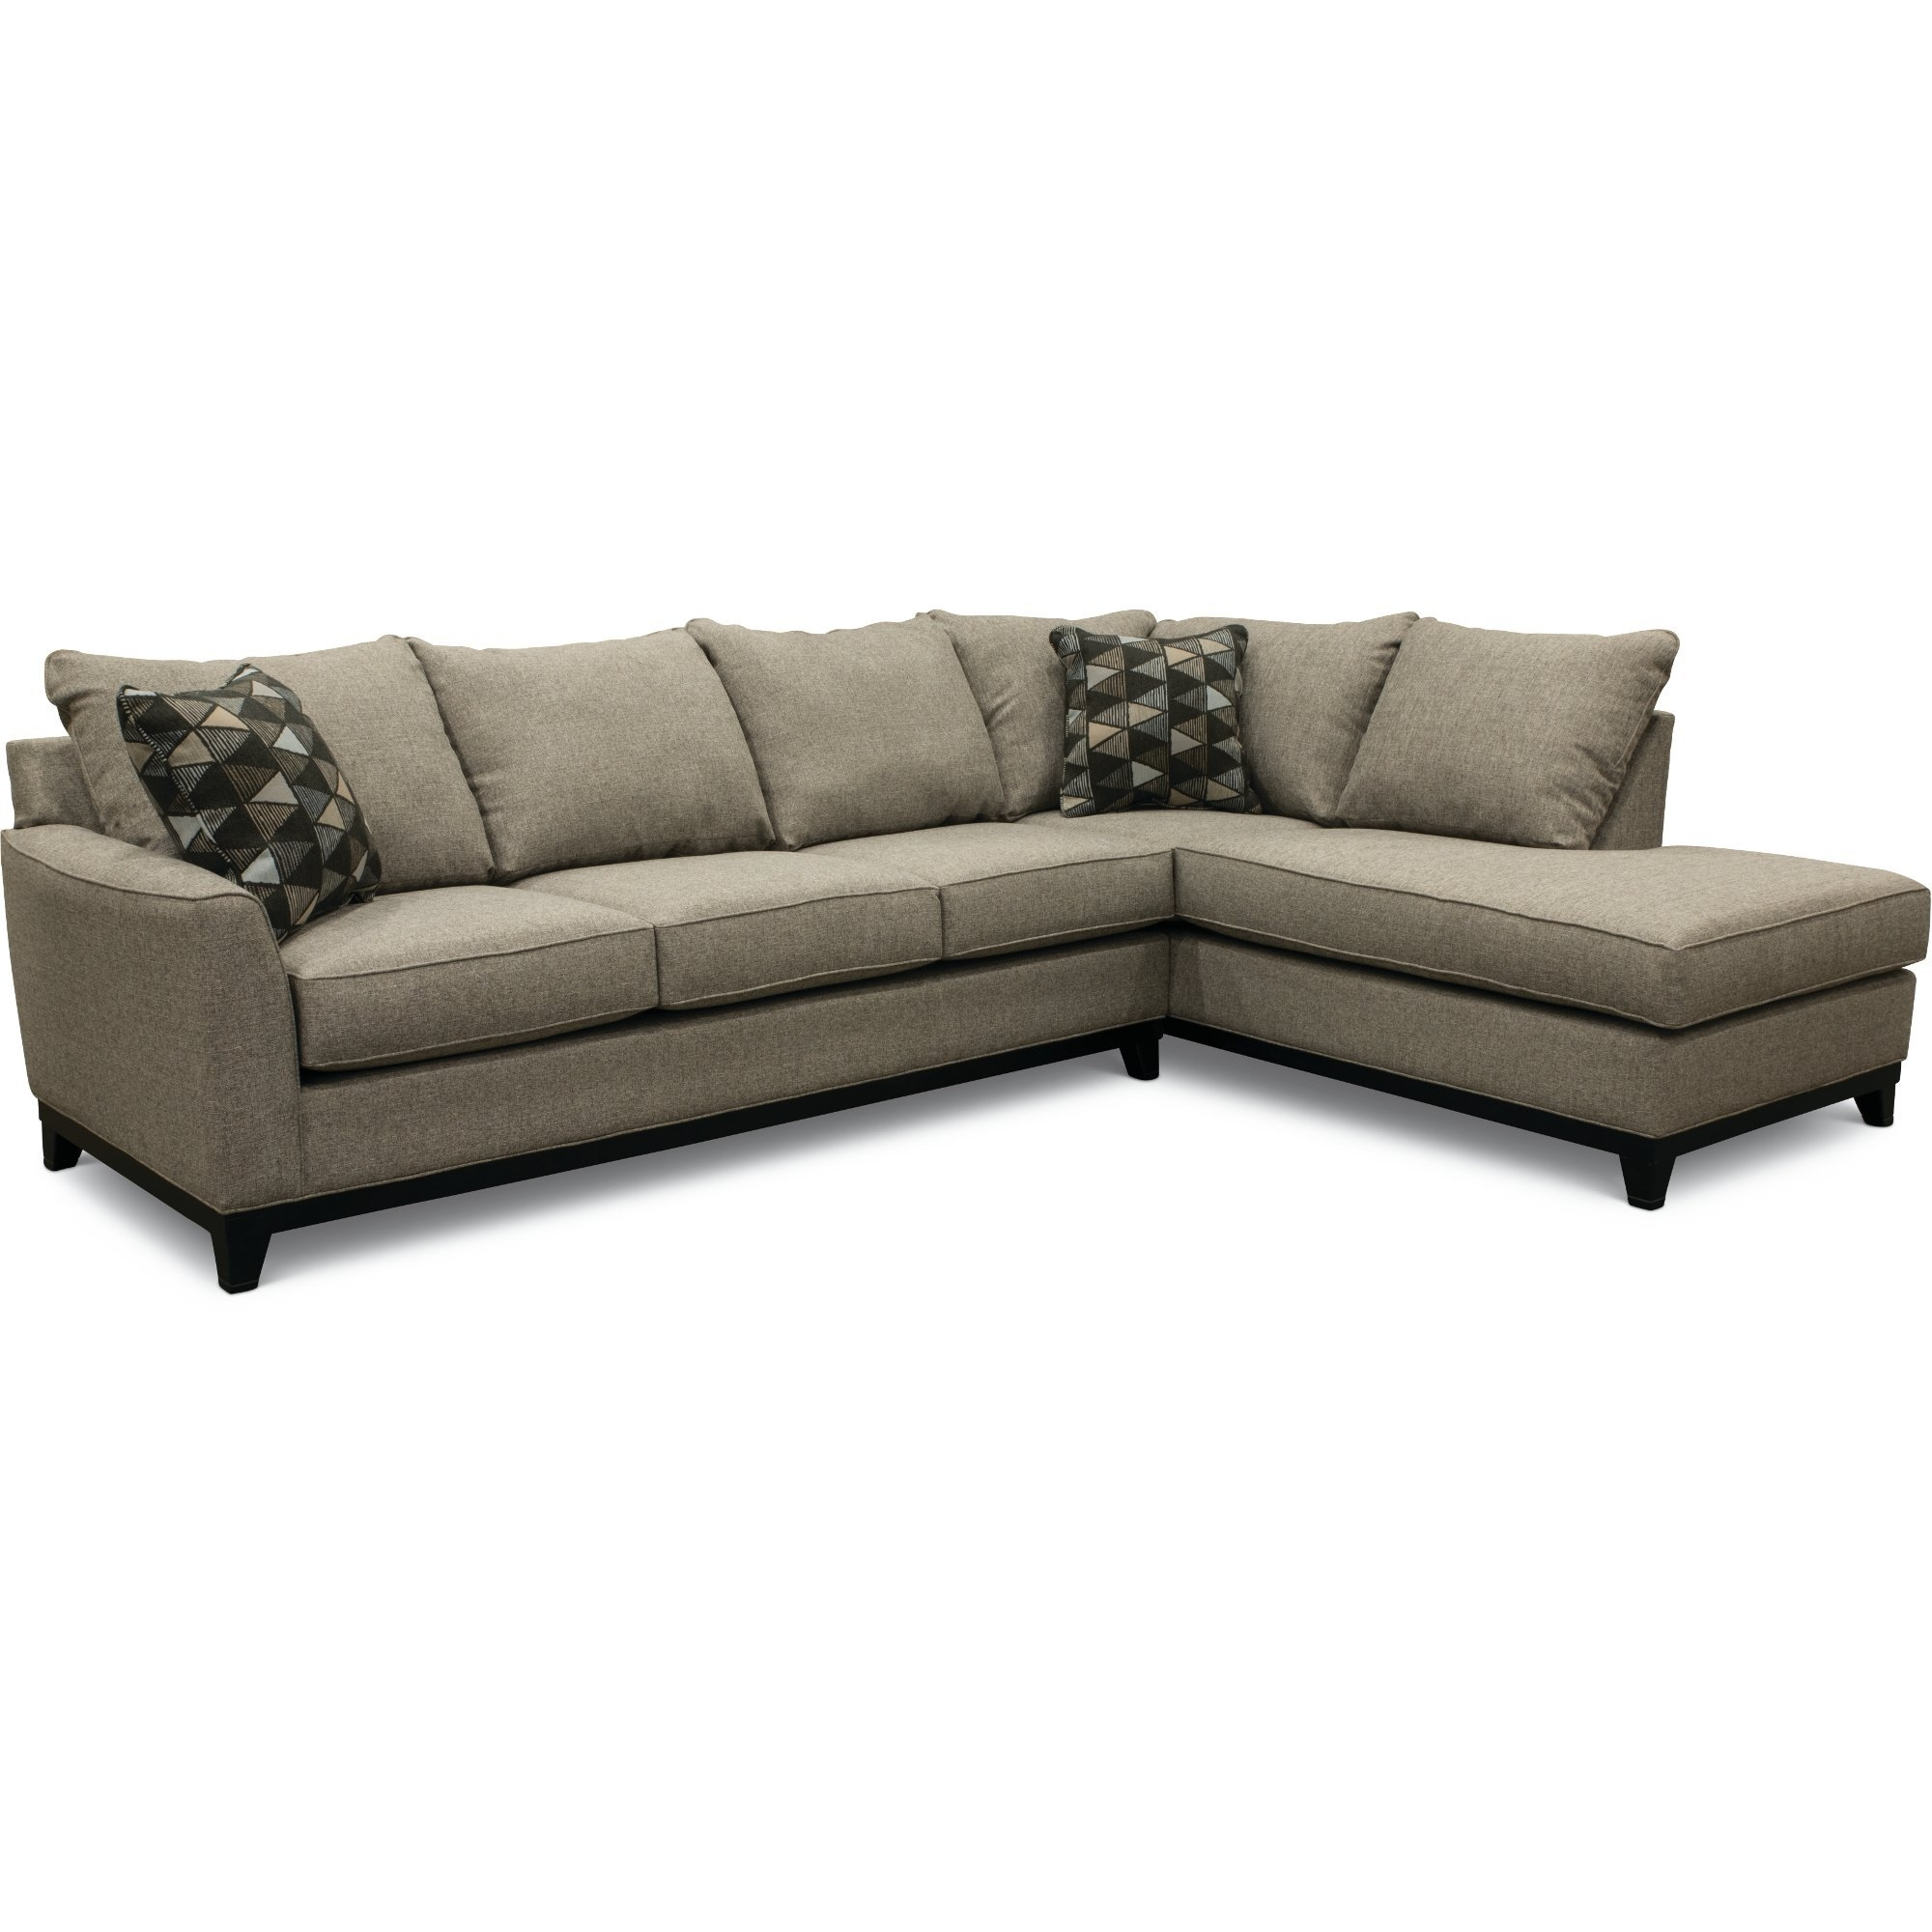 Sofa Sectional | Nokomis Charcoal Laf Sectional Within Aquarius Light Grey 2 Piece Sectionals With Laf Chaise (Image 24 of 25)